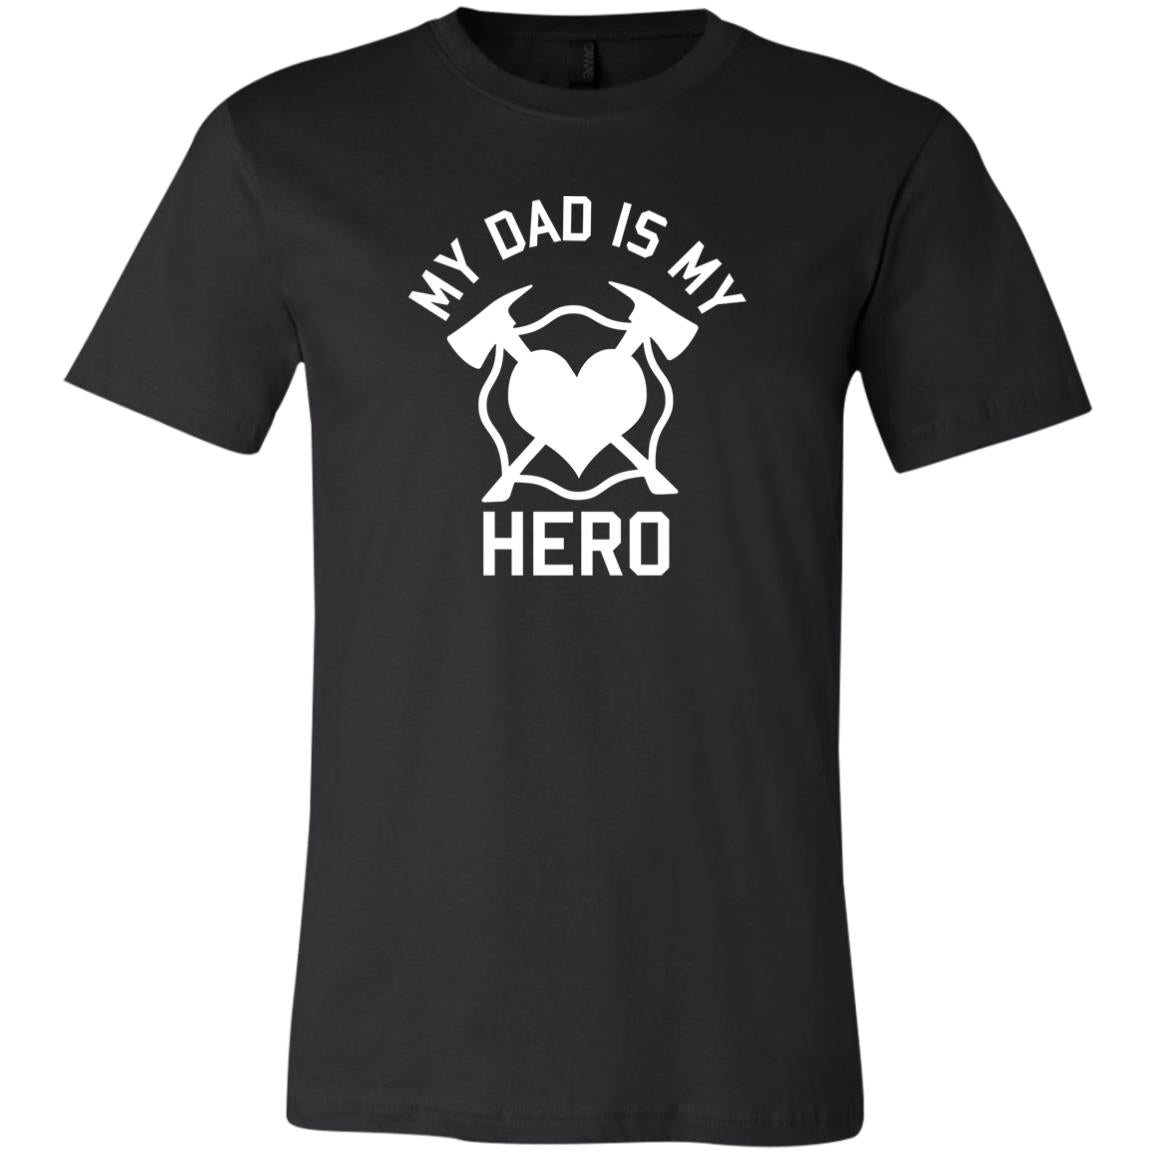 Youth My Dad is my Hero 3001Y Bella + Canvas Youth Jersey Short Sleeve T-Shirt